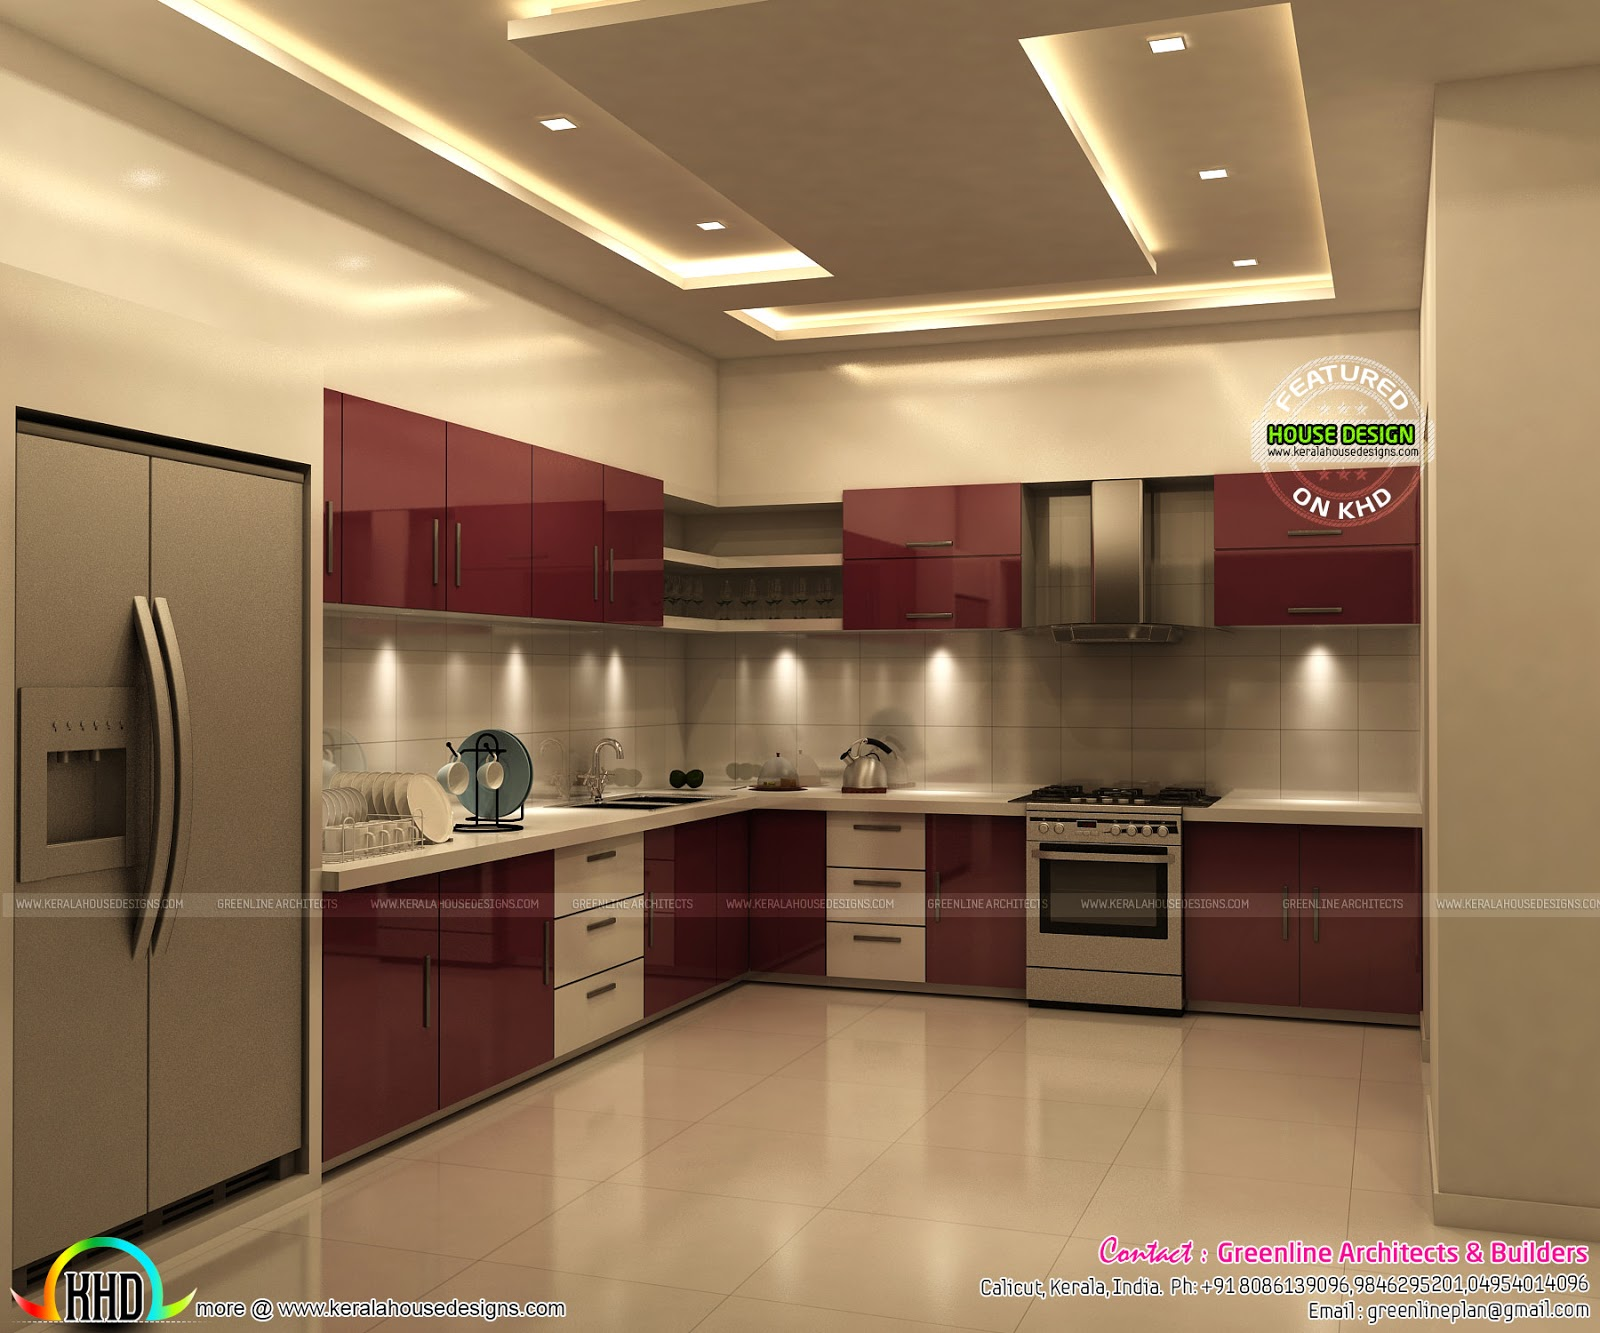 Superb kitchen and bedroom interiors kerala home design and floor plans - Kitchen interior designing ...